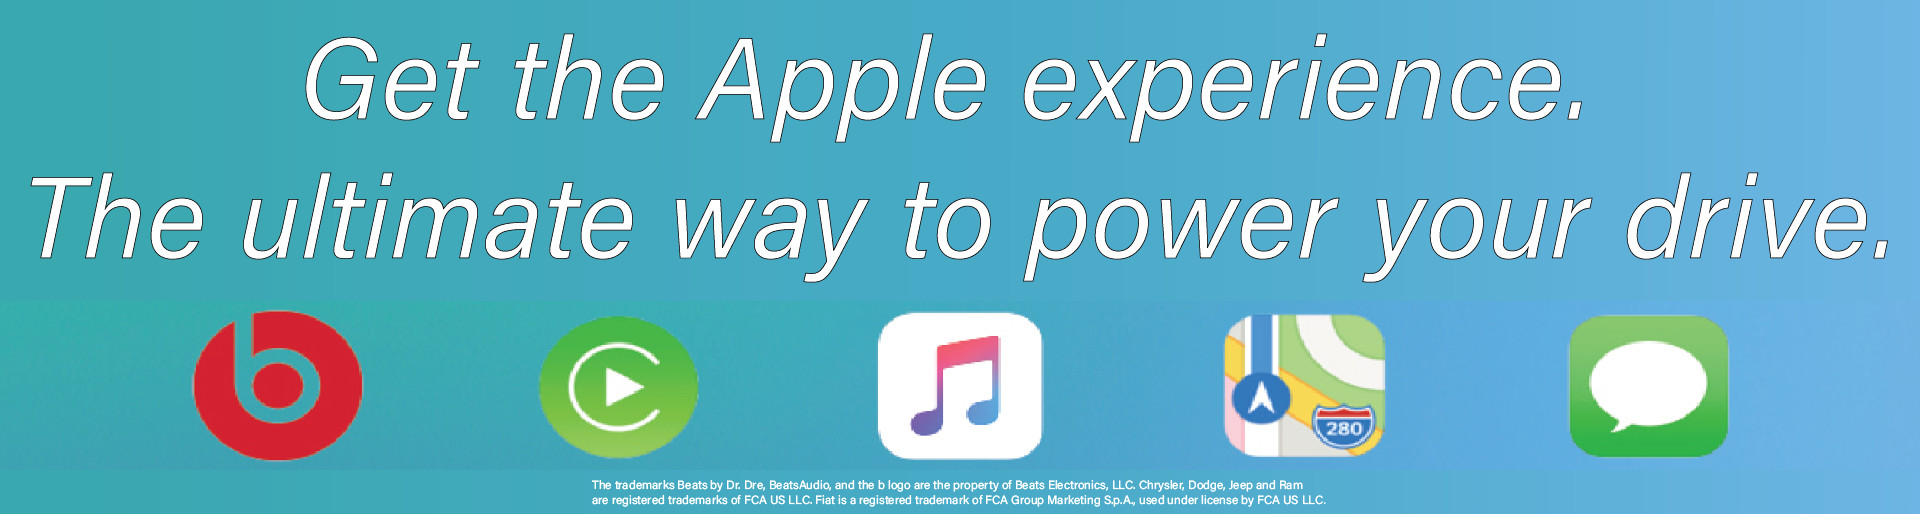 apple-experience-banner